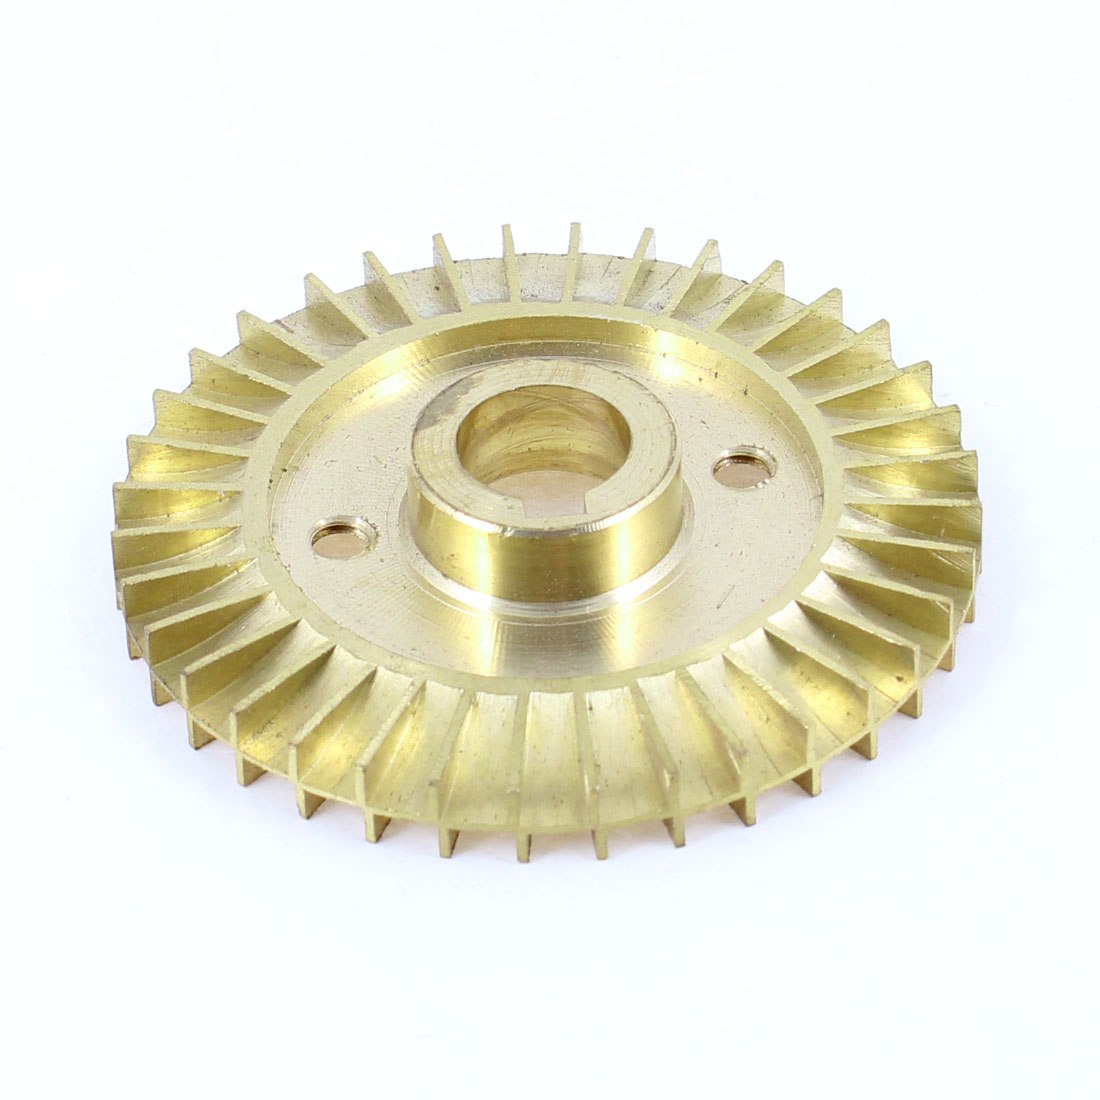 Water Pump Part Double Side 60mm Diameter Gold Tone Brass Impeller